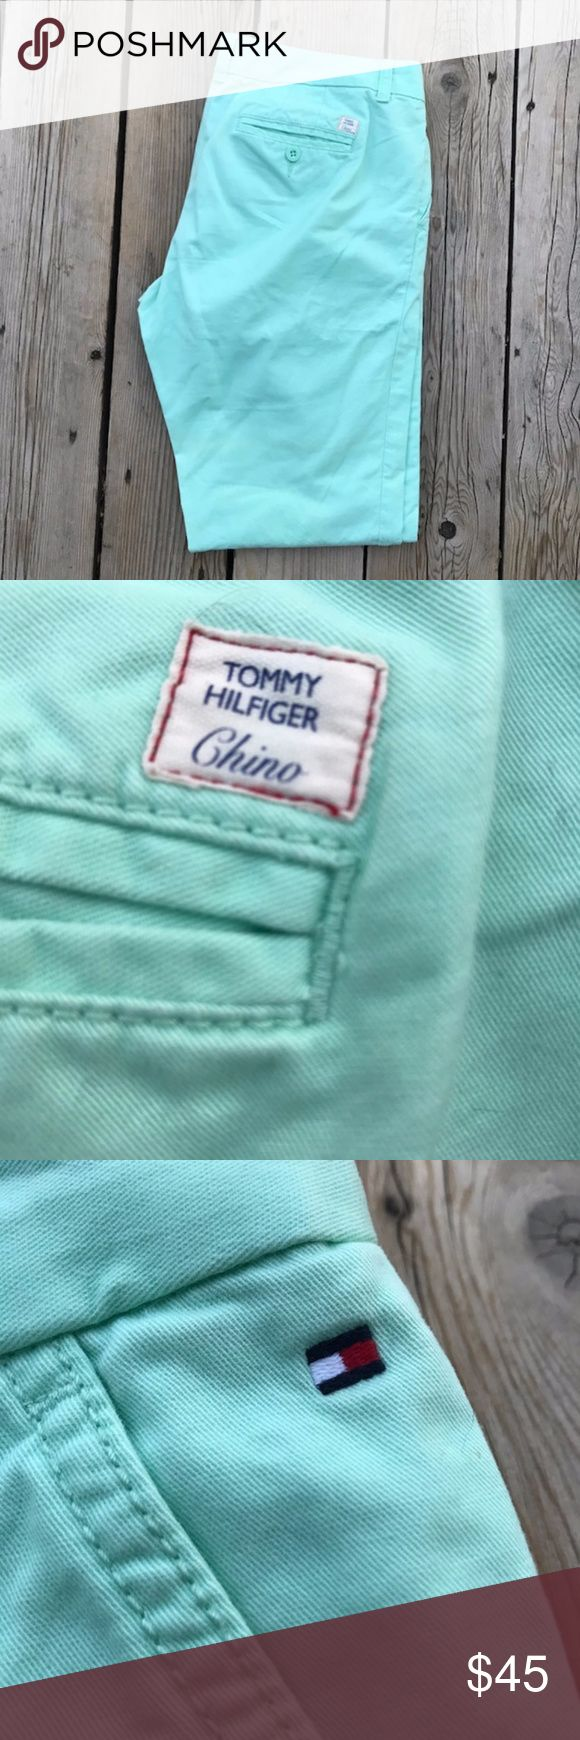 "Tommy Hilfiger Chino Women's Capris--Mint--Size 8 Tommy Hilfiger women's capris in mint green. Size 8, inseam is 29 1/2"" long. Tommy Hilfiger Pants Capris"